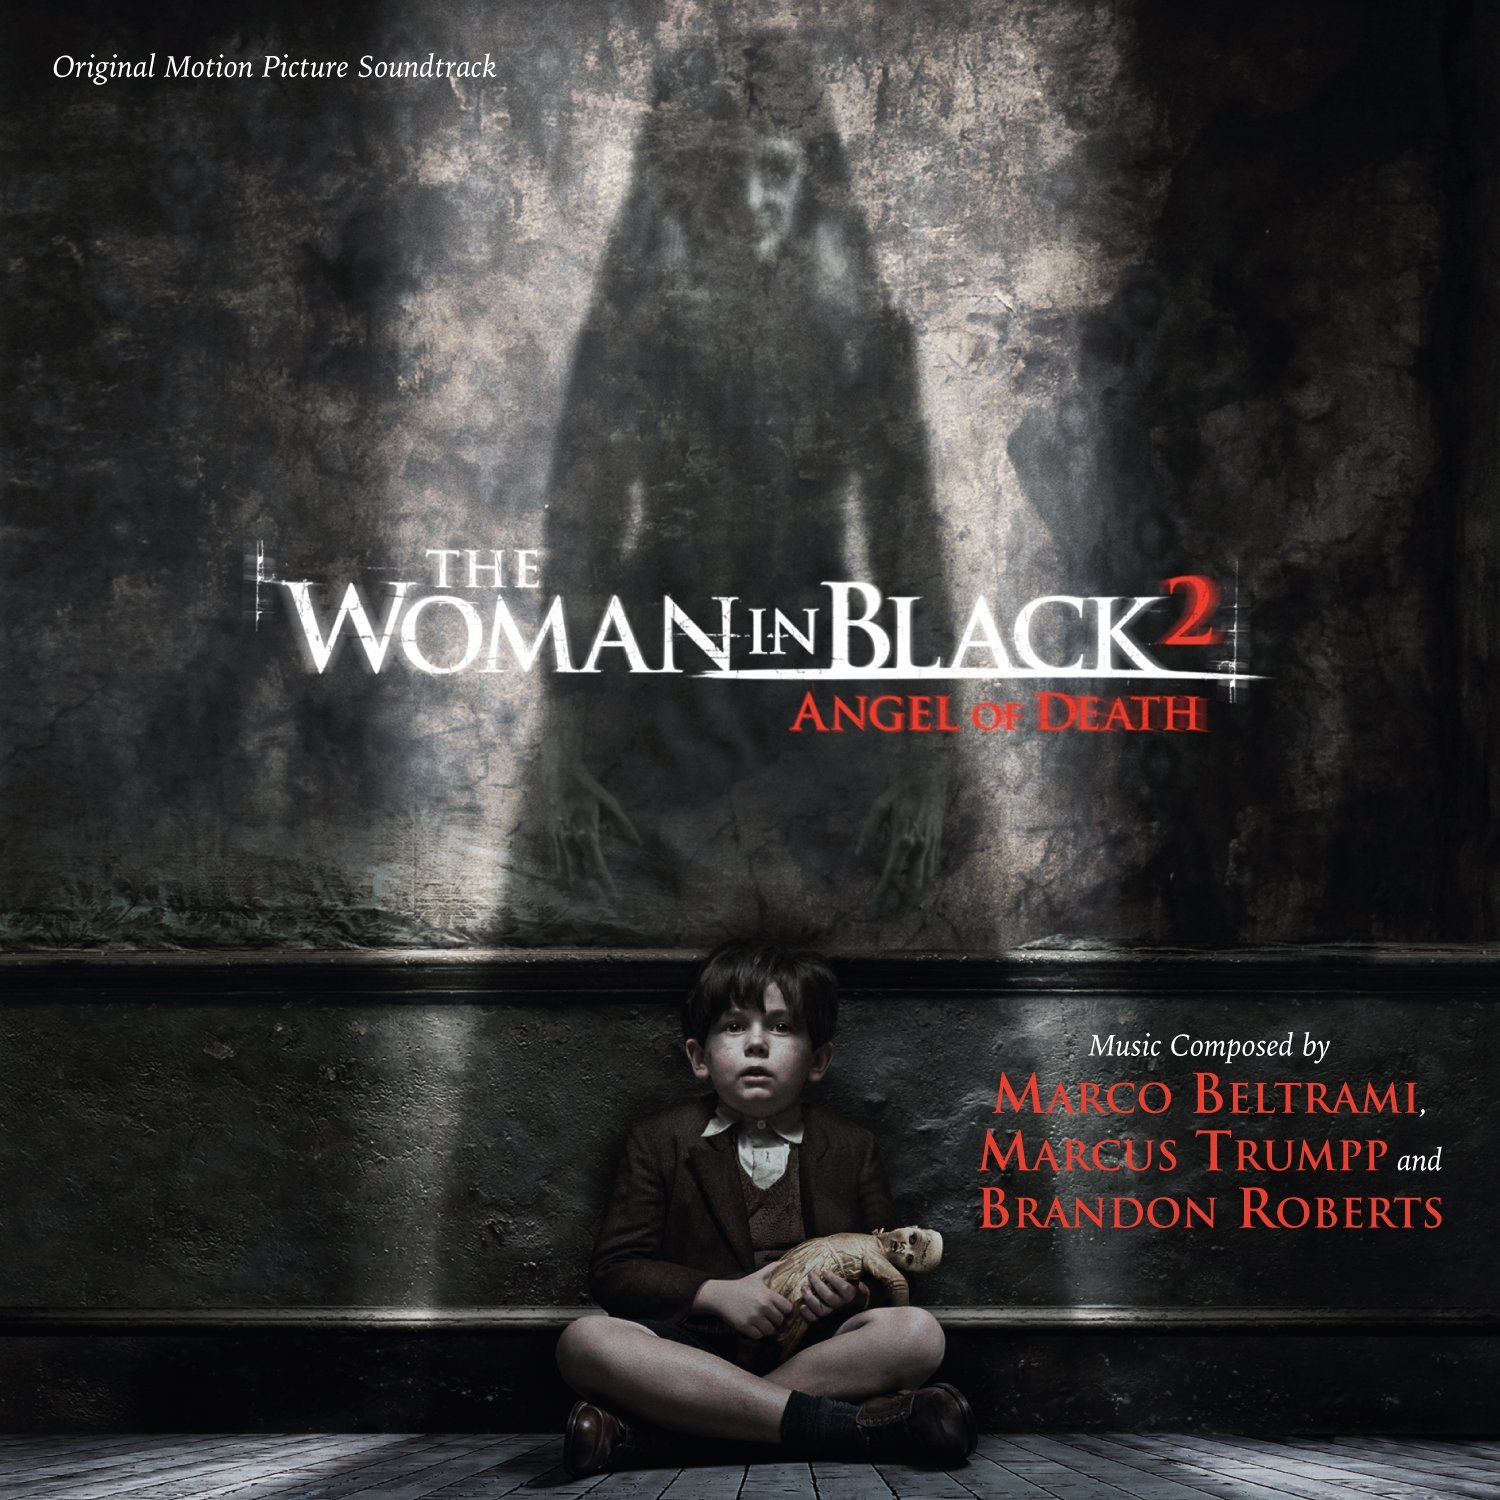 womaninblack2 soundtrack - The Woman in Black 2 Angel of Death Soundtrack Available Today!